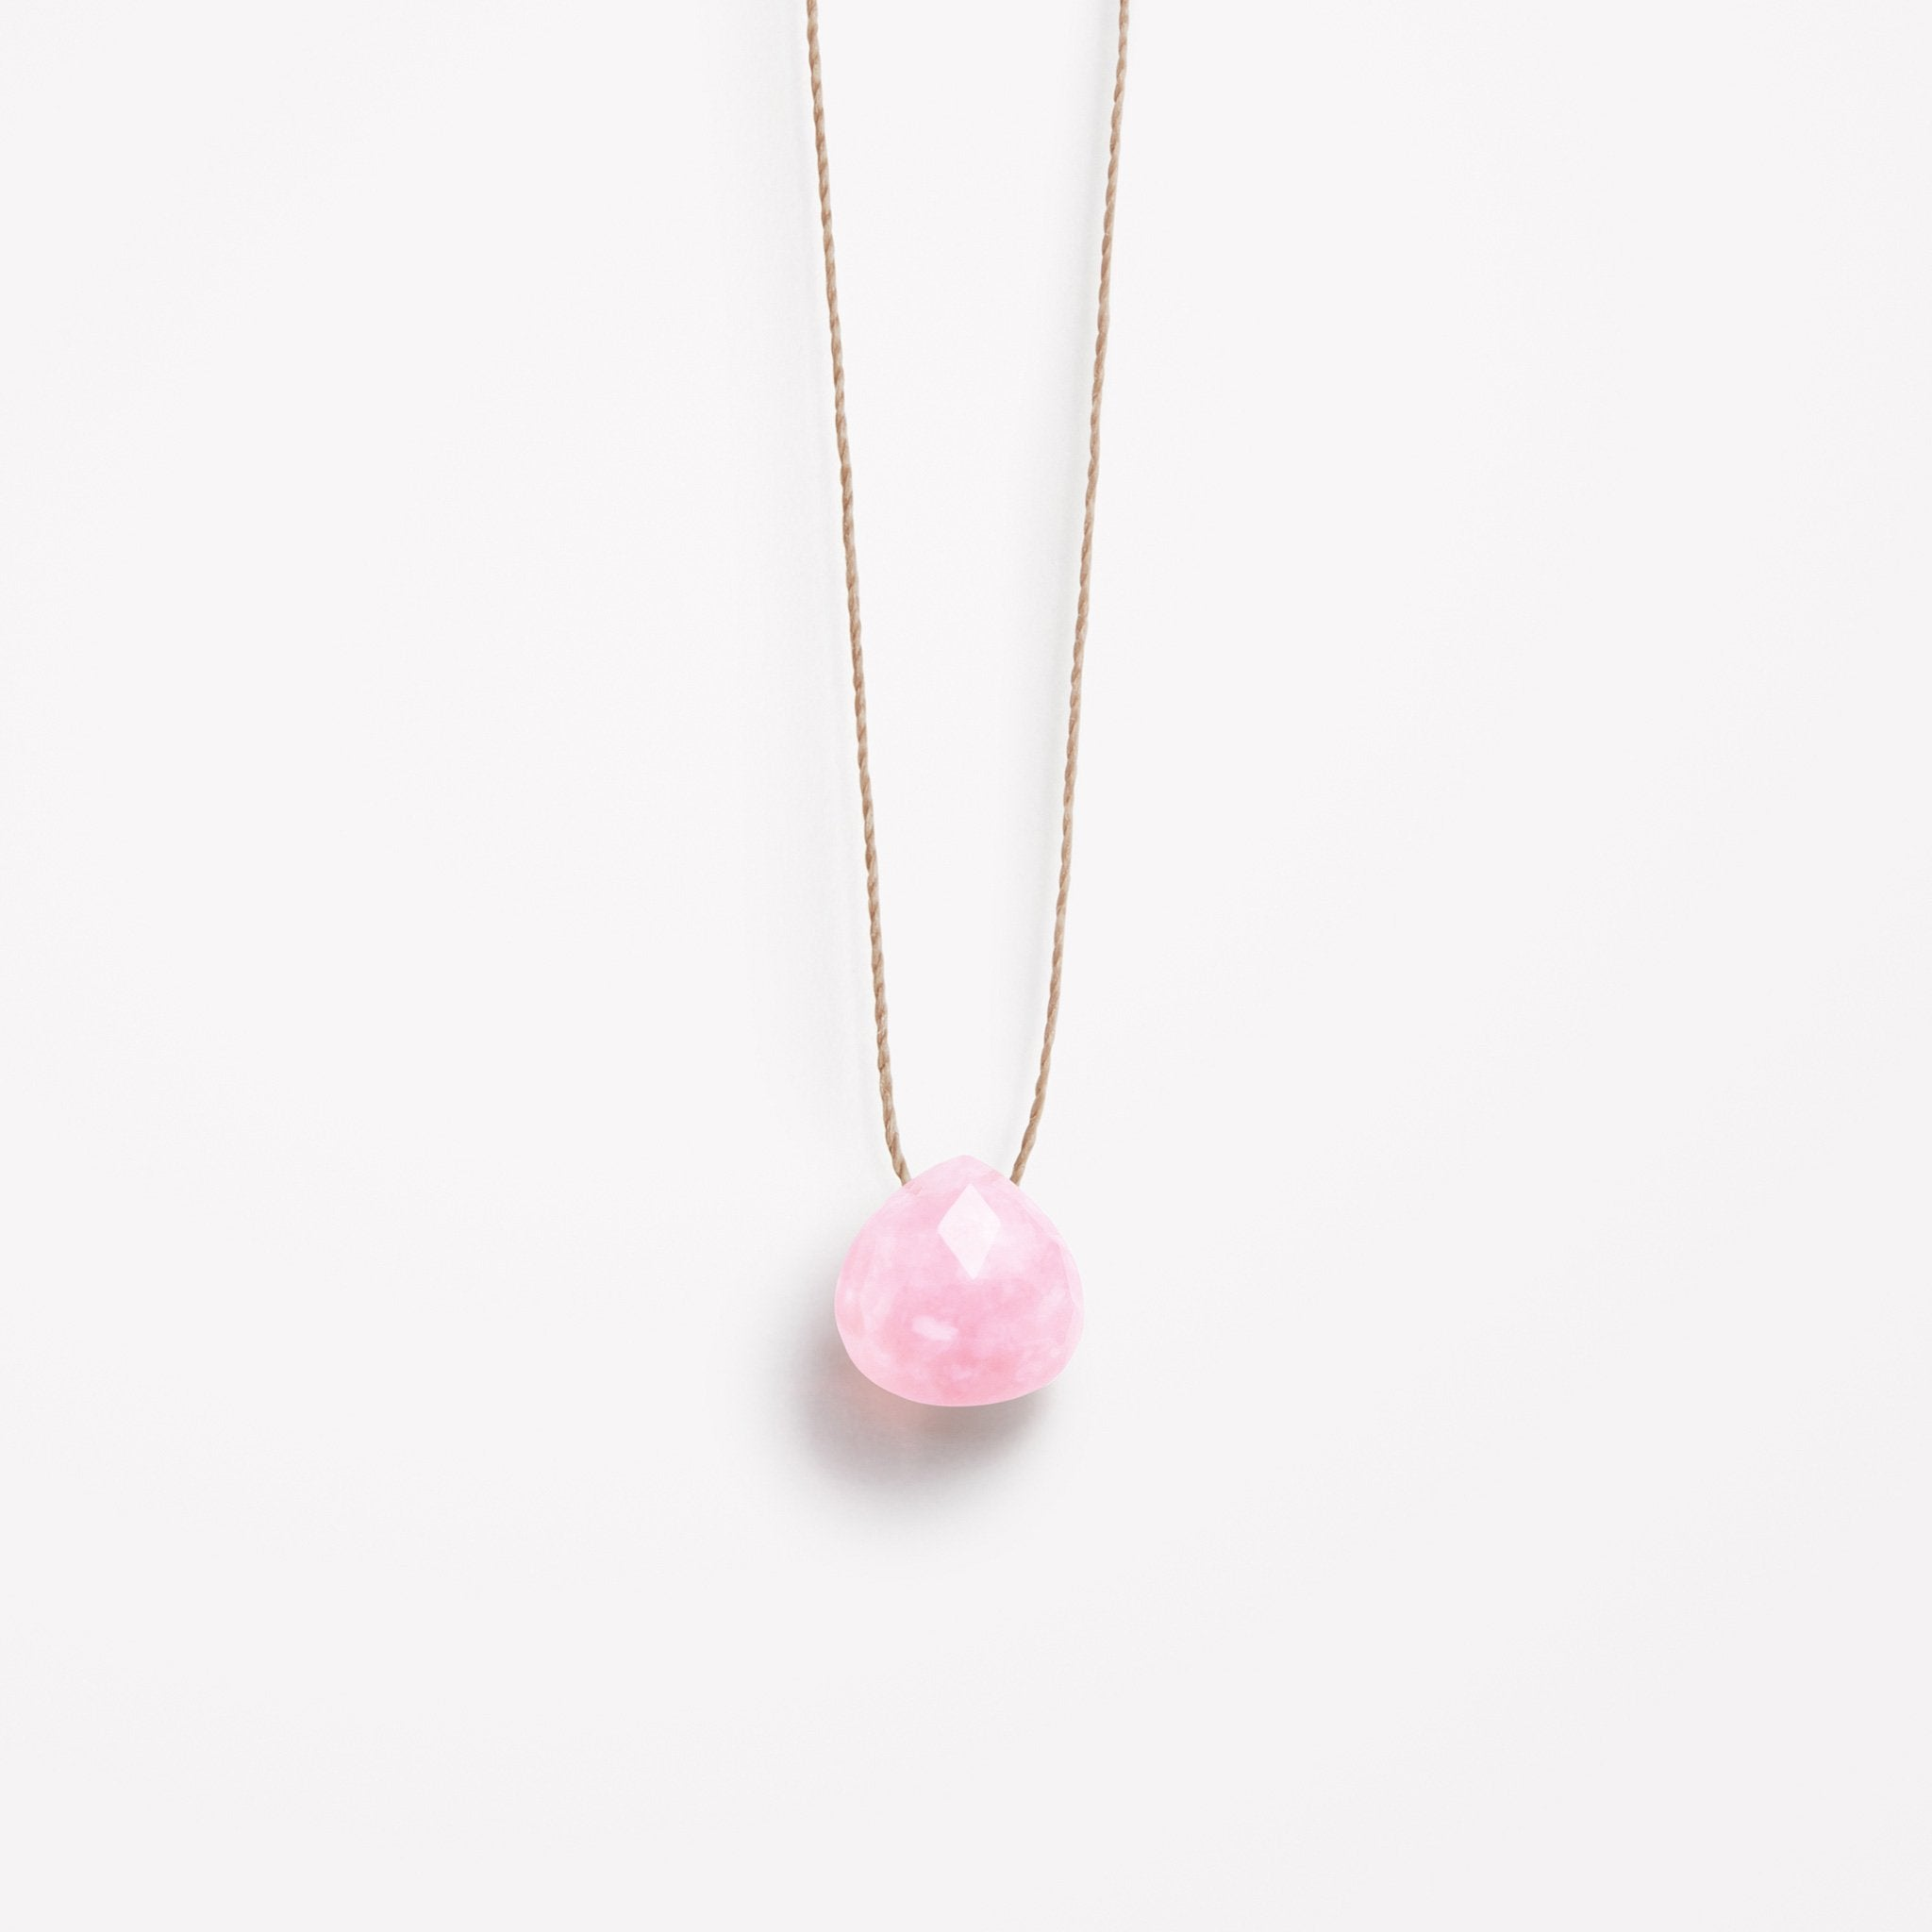 Wanderlust Life Ethically Handmade jewellery made in the UK. Minimalist gold and fine cord jewellery. pink opal fine cord necklace